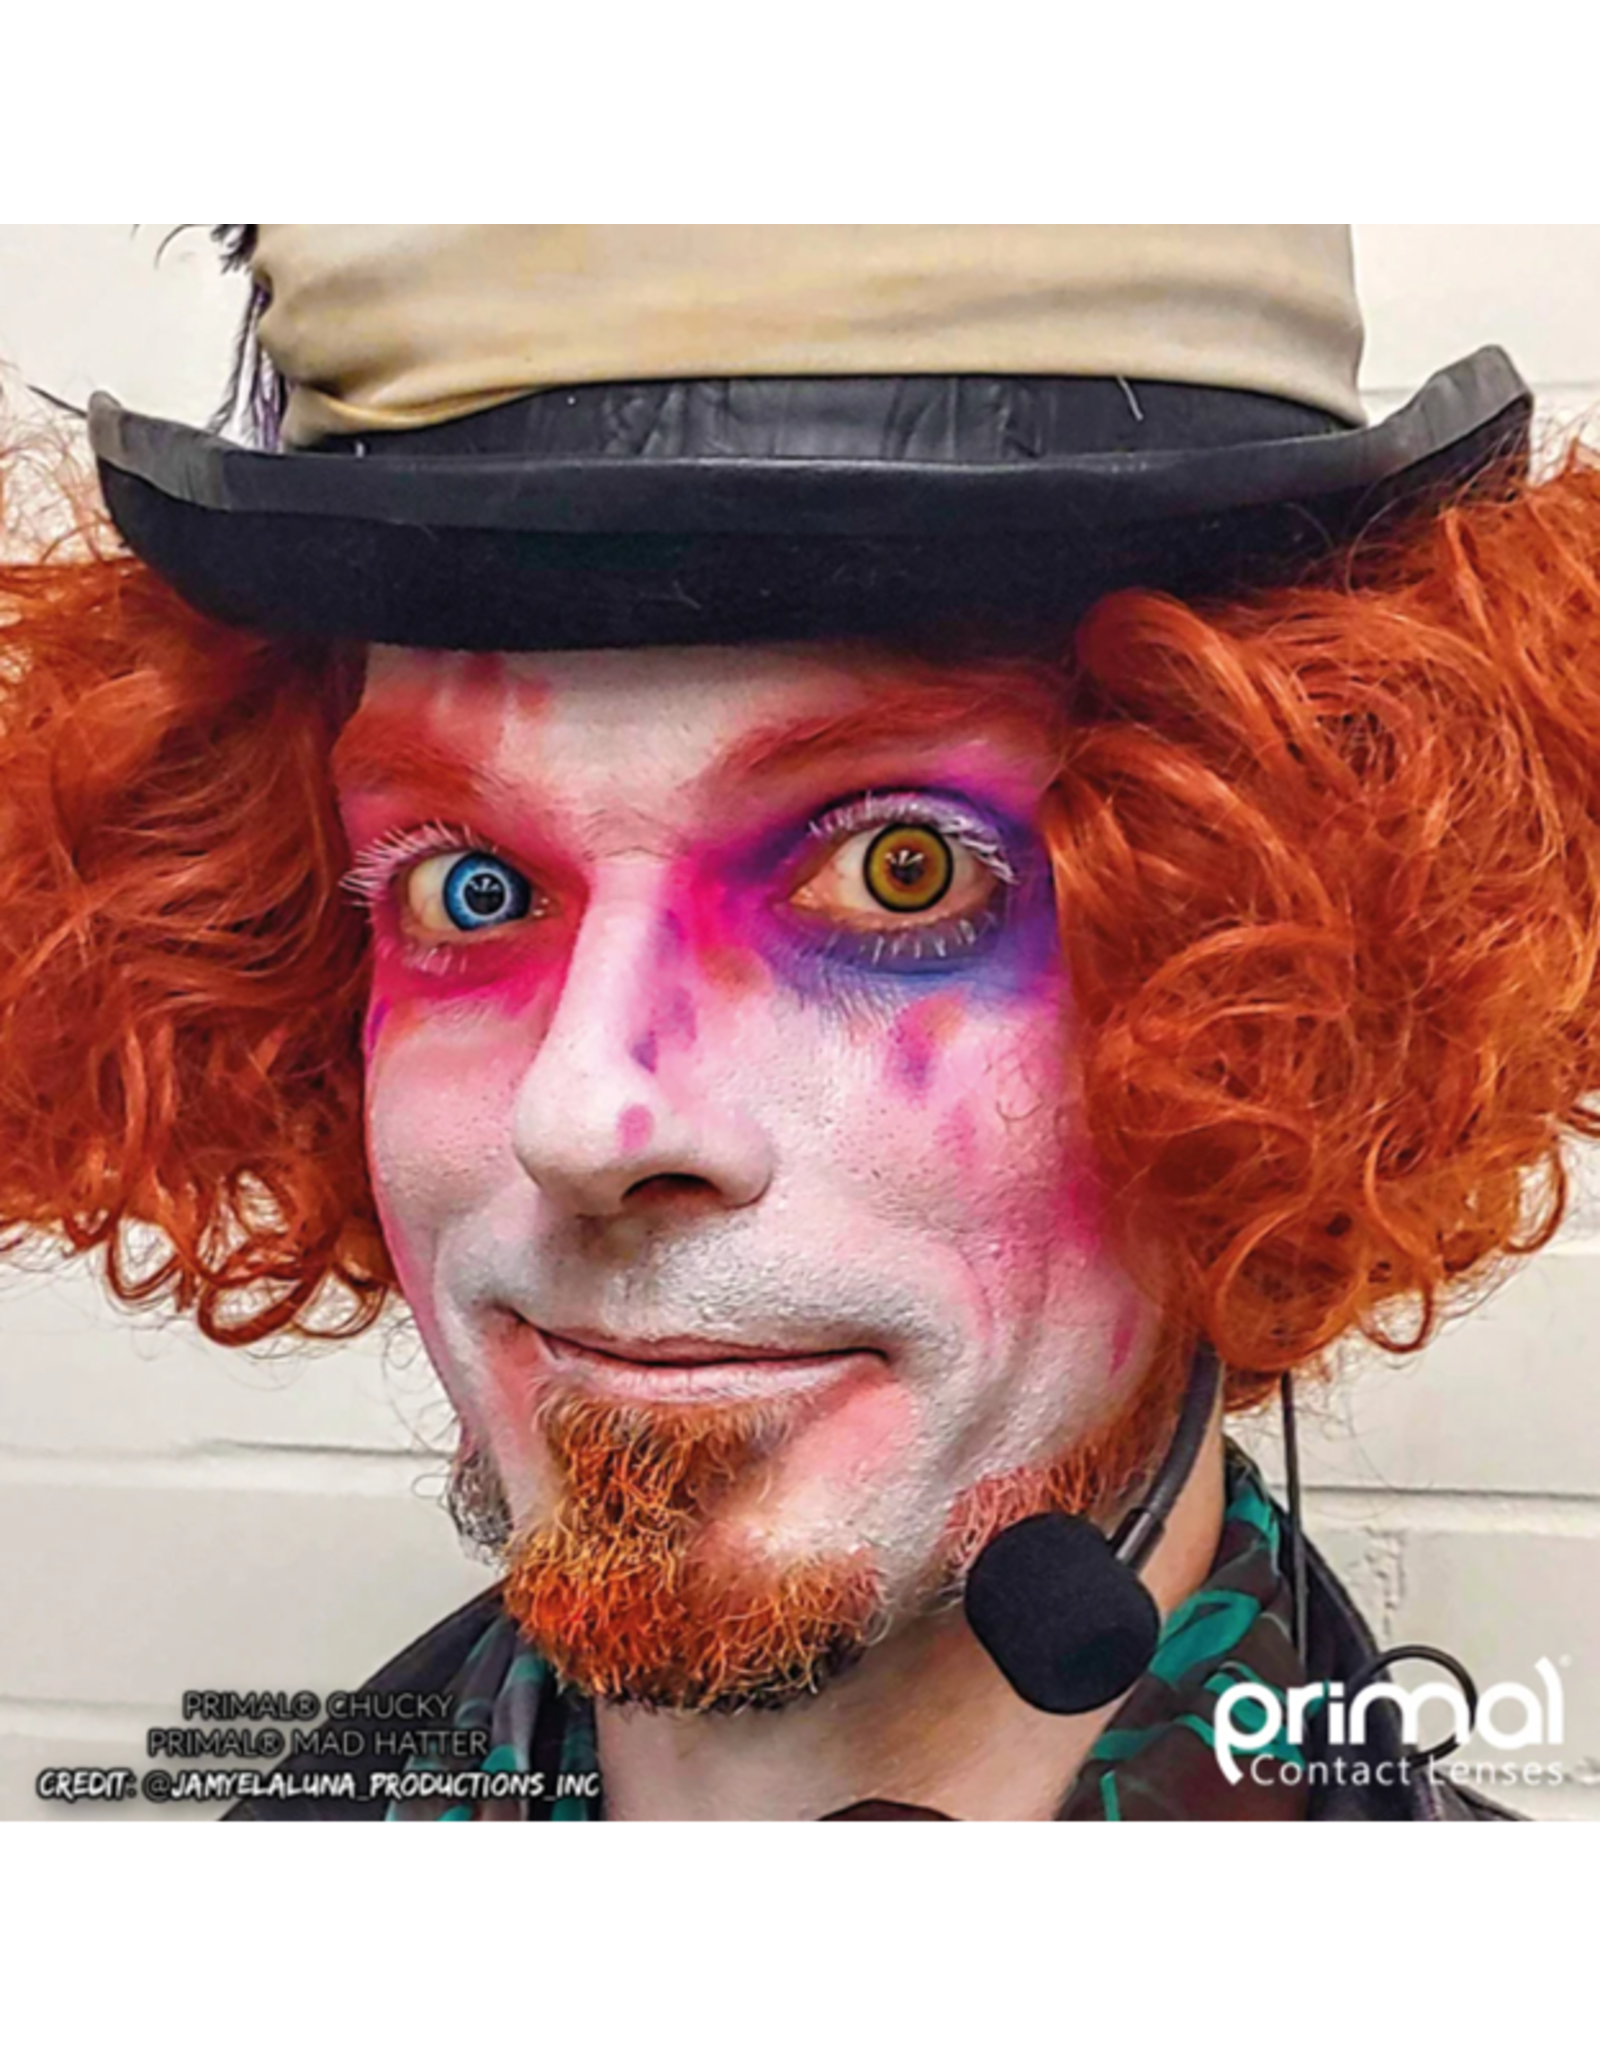 Primal Costume Contact Lenses - Madhatter